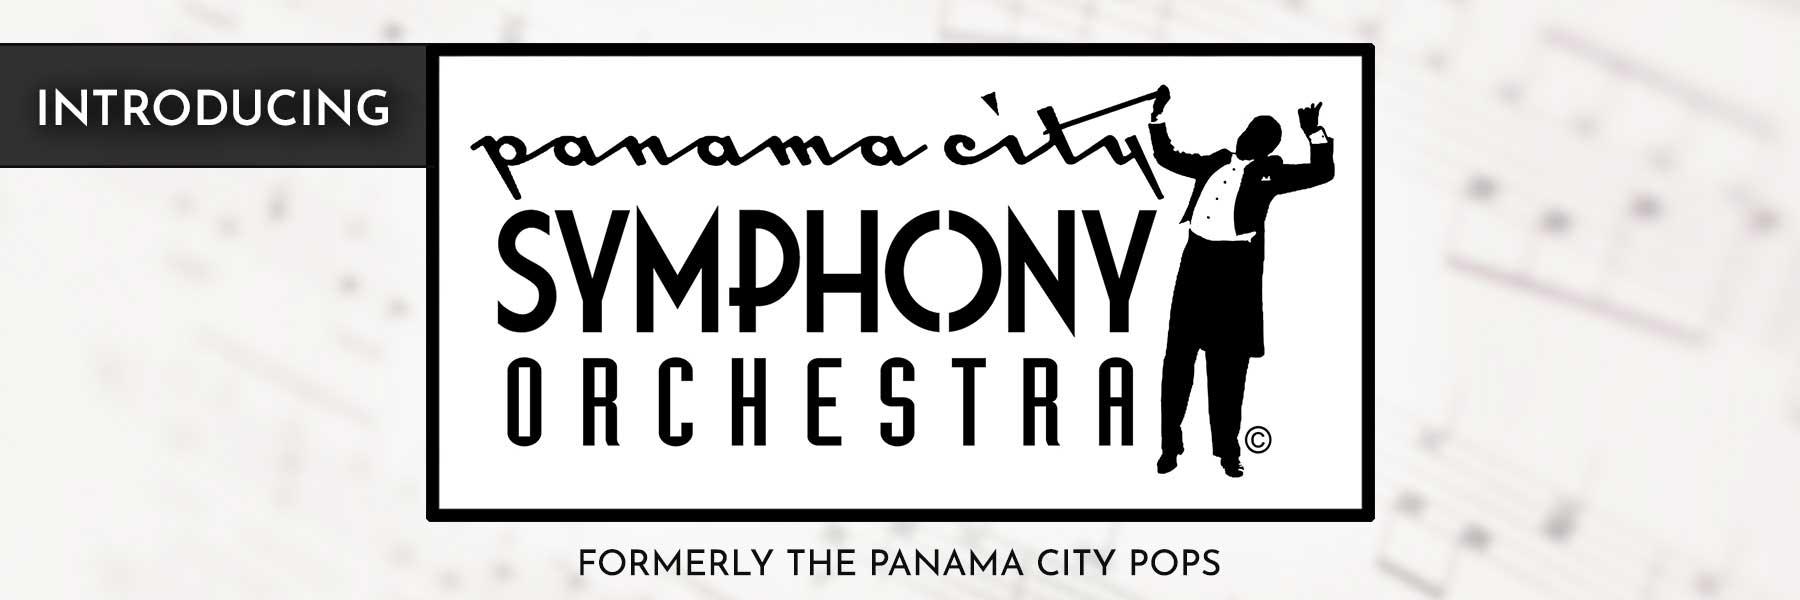 Panama City Symphony Orchestra - formerly the Panama City POPS